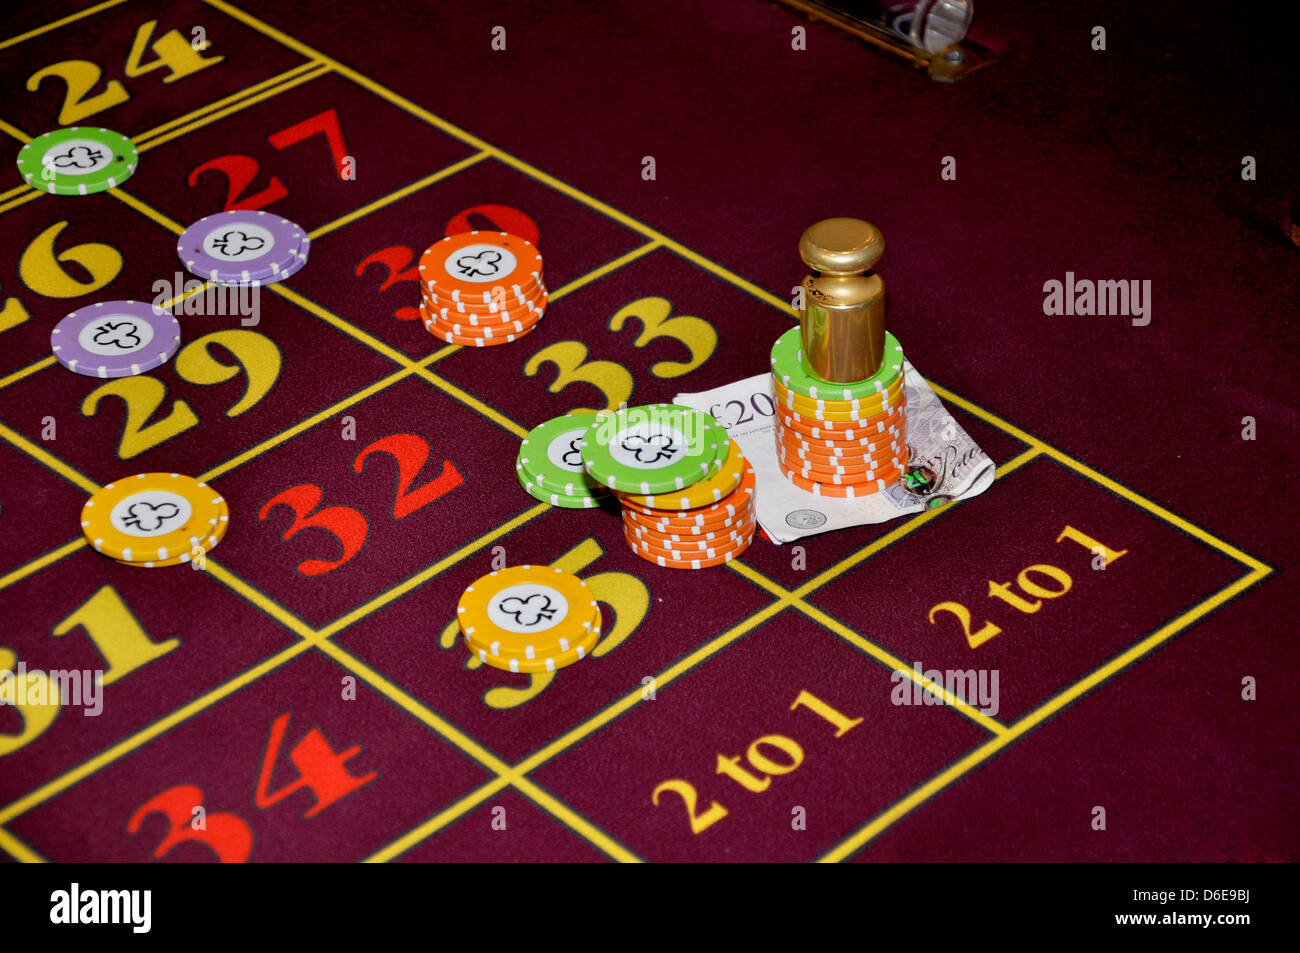 How to win orange roulette heads up poker arcade game for sale